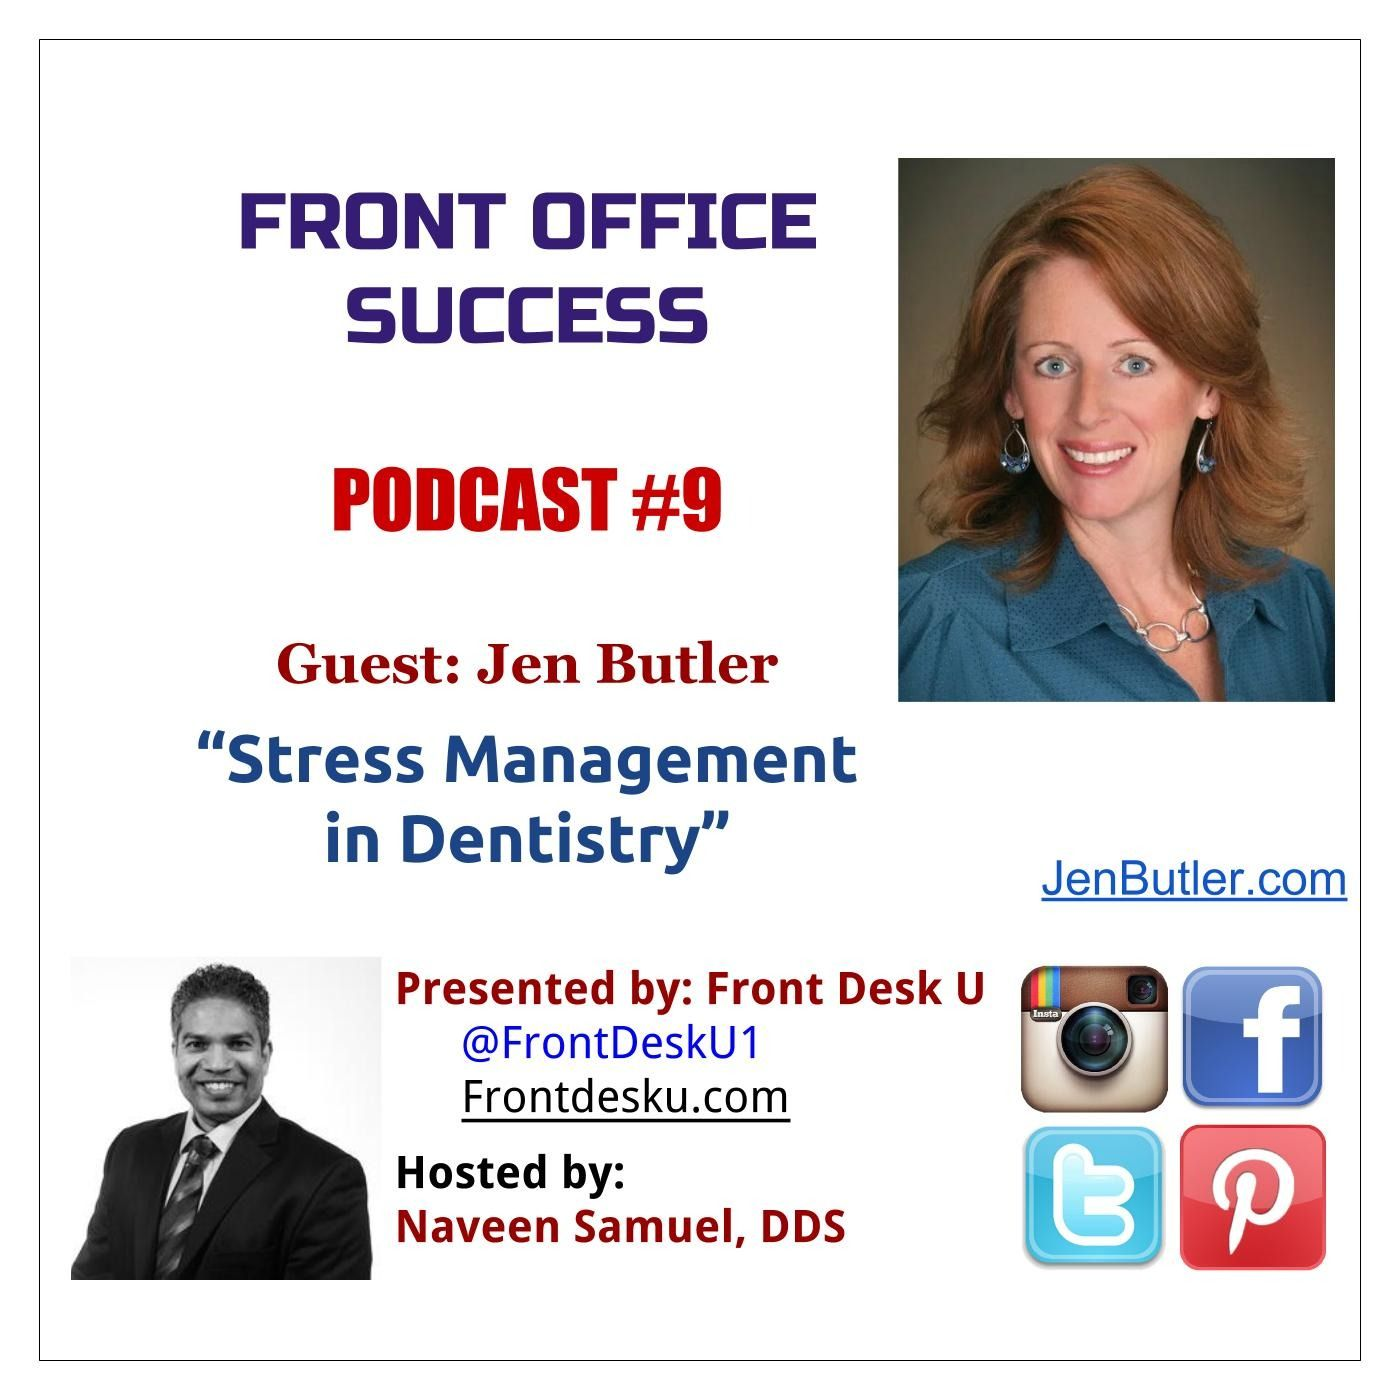 Front Office Success - Podcast #9 - Jen Butler